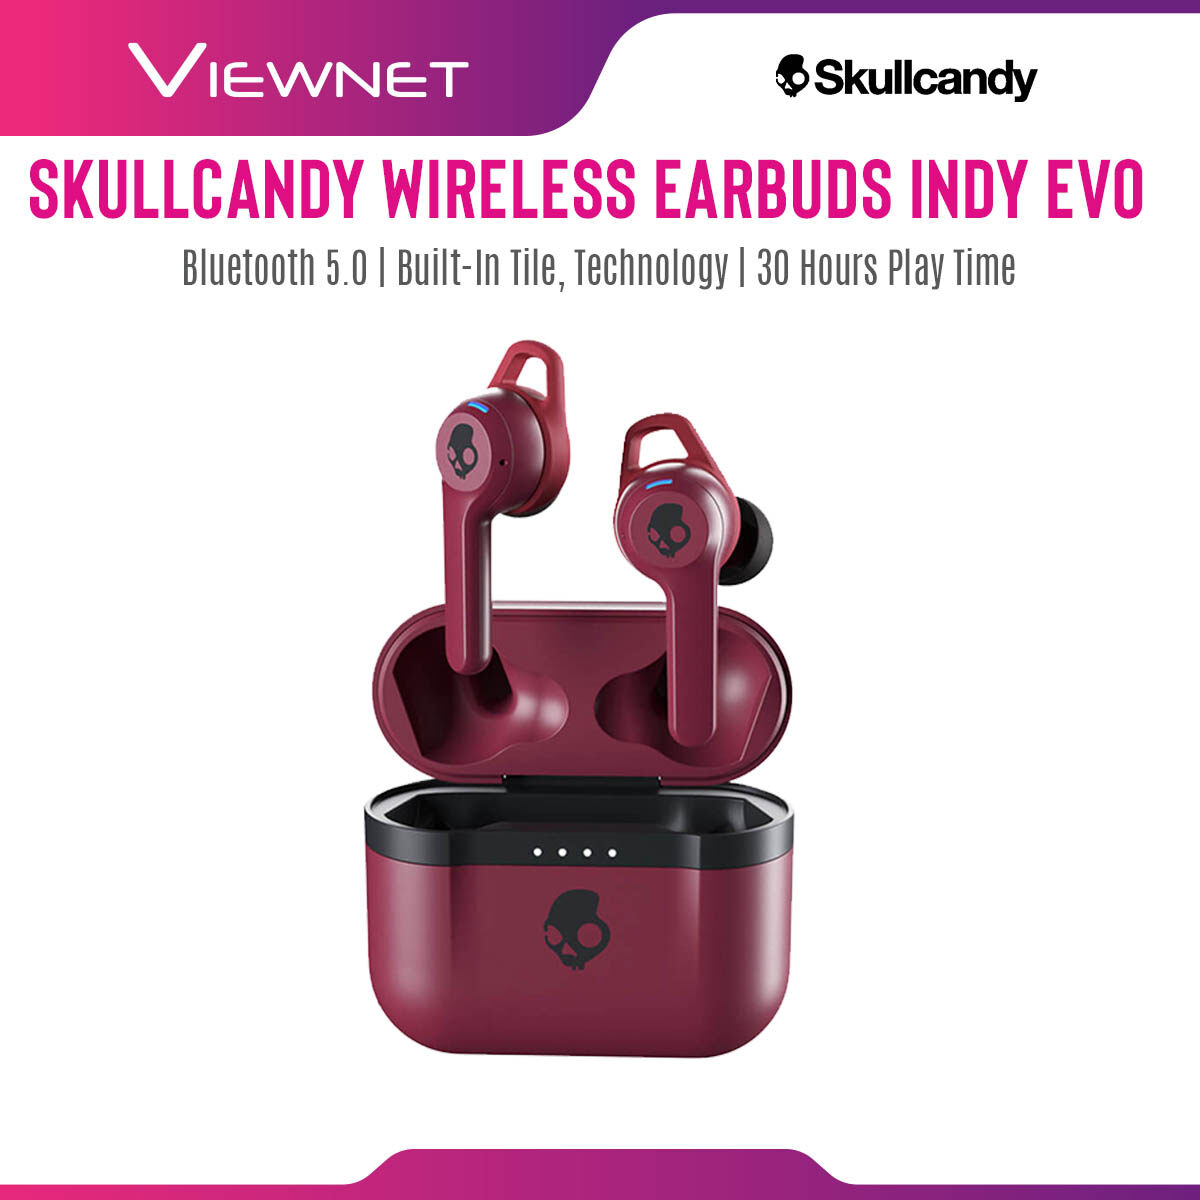 "Skullcandy Wireless Earbuds Indy Evo with Bluetooth 5.0, Built-in Tileâ""¢ Technology, 30 Hour Play Time, IP55 Sweat Resistant, Water Resistant And Dust Resistant, 3 EQ Modes (Music, Movie, Podcast)"